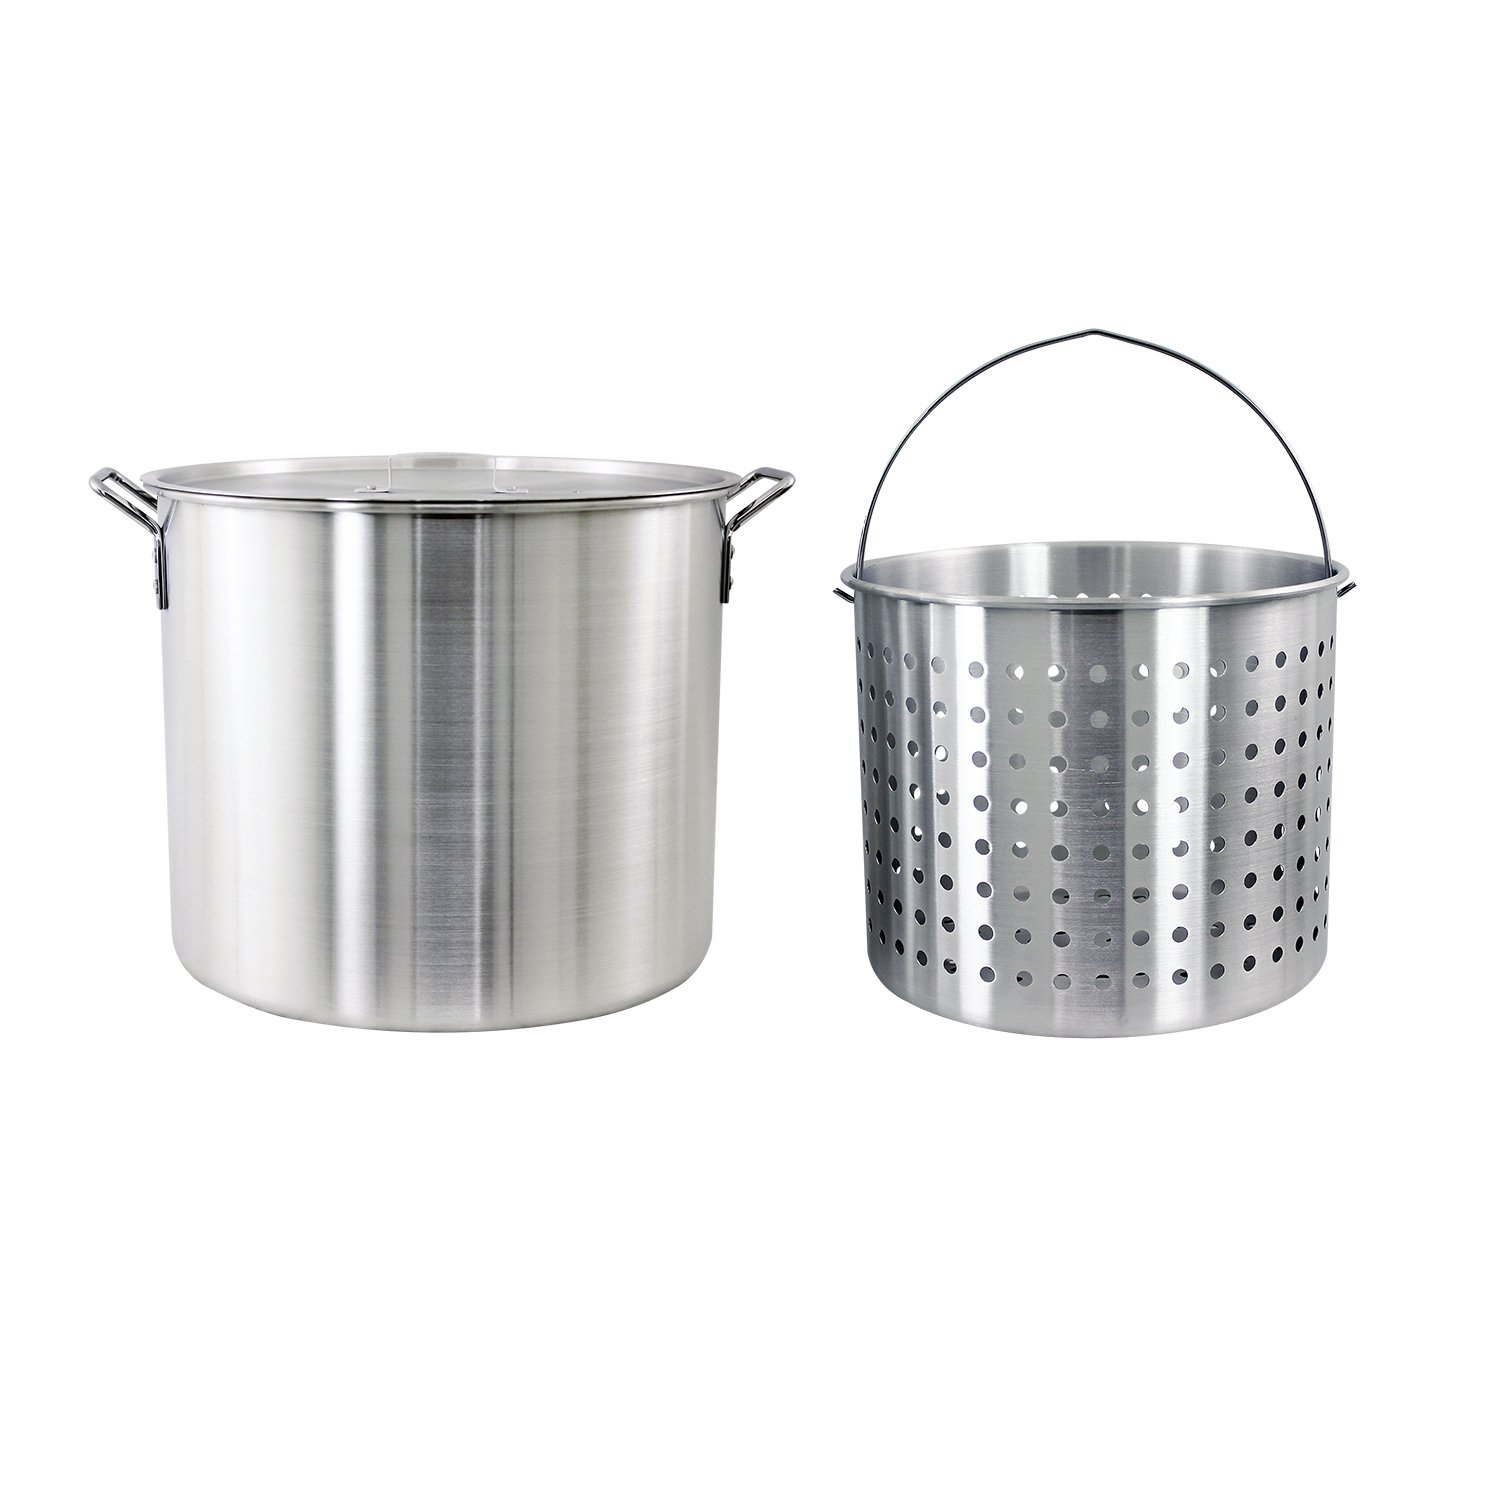 CHARD ASP60, Aluminum Stock Pot and Strainer Basket Set, Silver, 60 quart by Chard